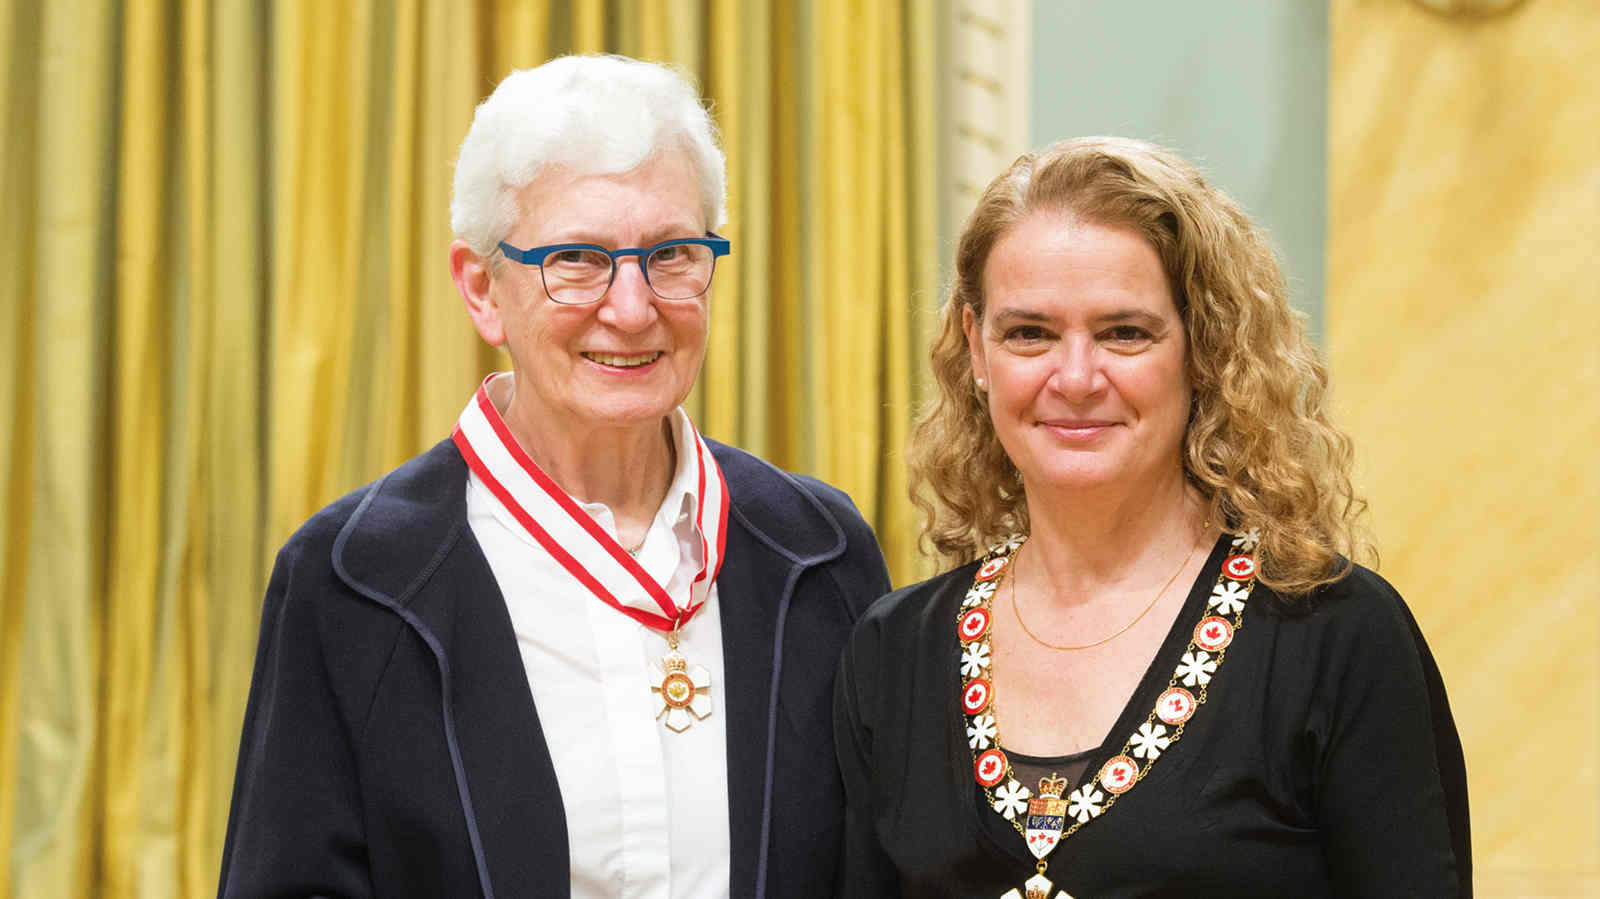 Her Excellency presents the Officer insignia of the Order of Canada to DarleenBogart, O.C. Credit: Sgt Johanie Maheu, Rideau Hall, OSGG.